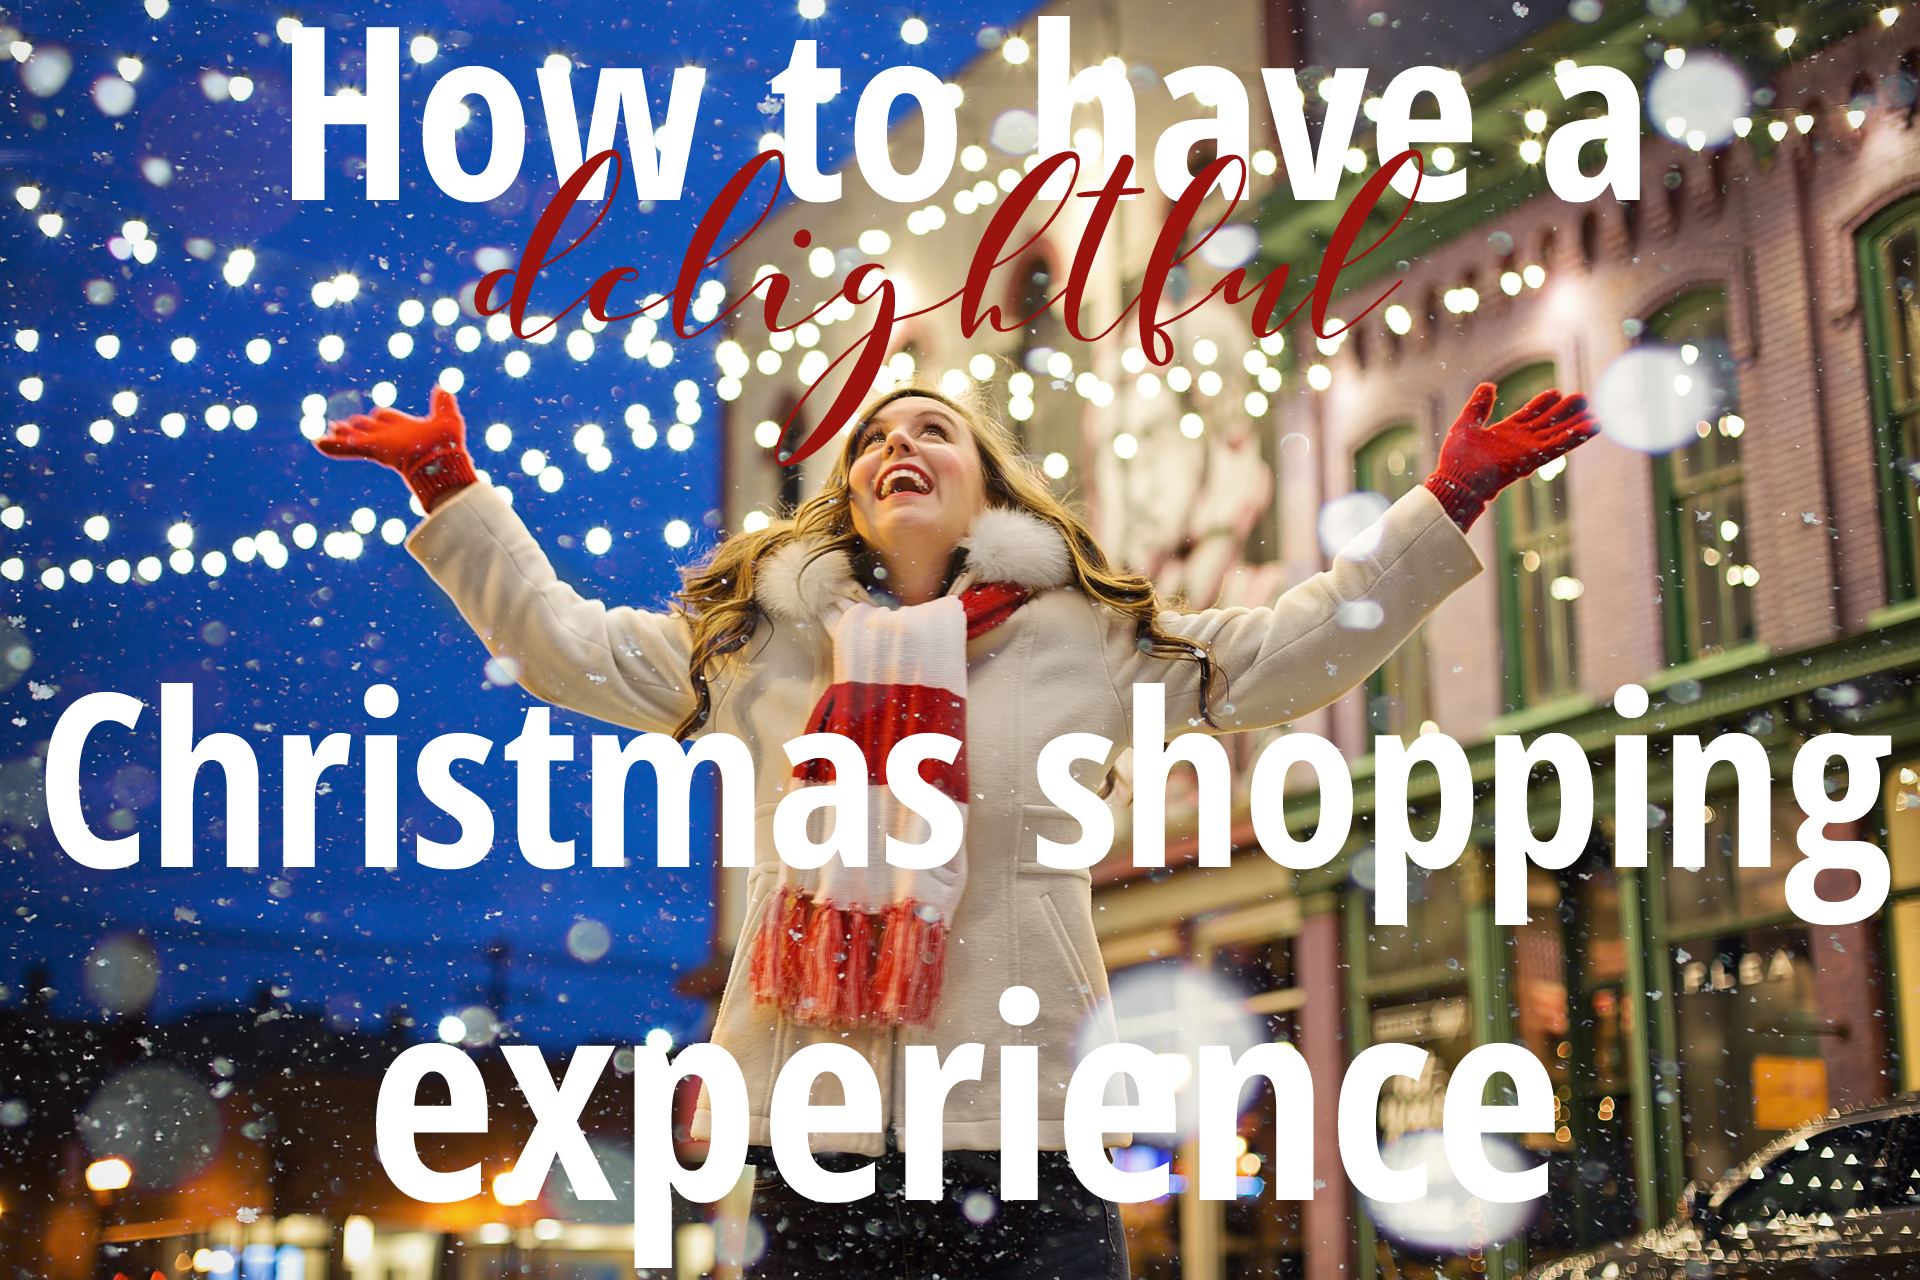 How to Have a Delightful Shopping Experience